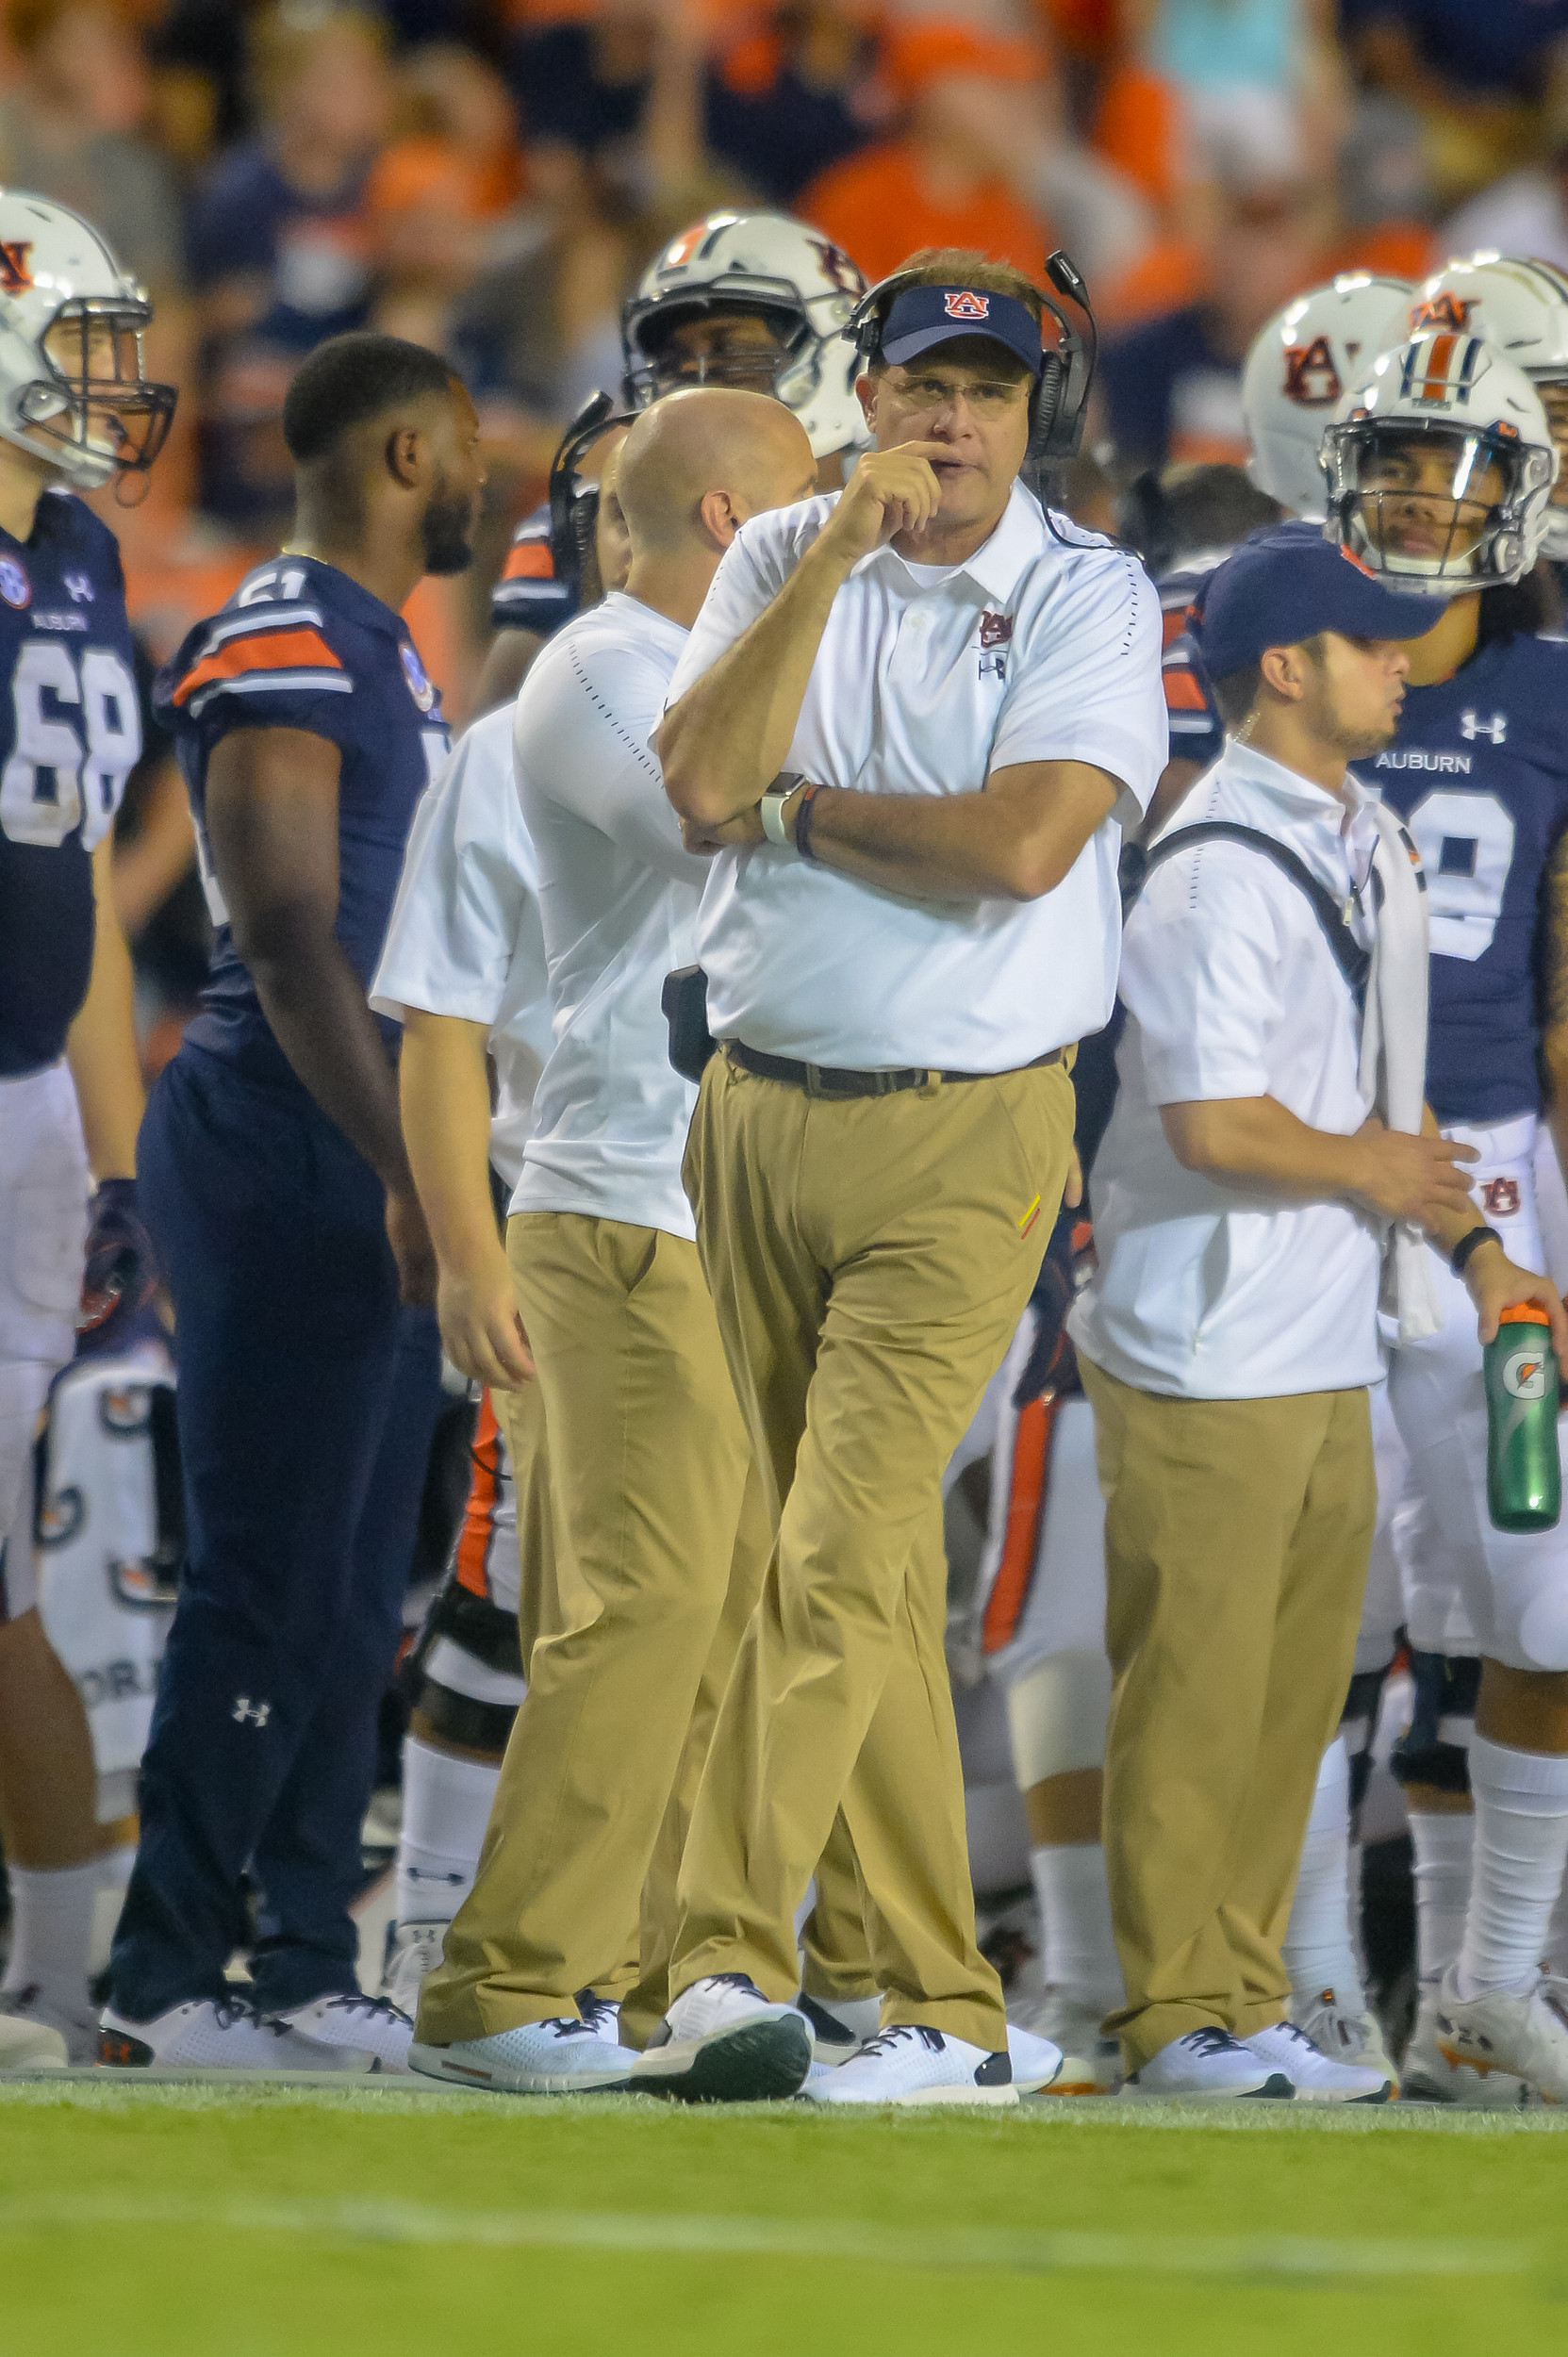 Auburn Tigers head coach Gus Malzahn looks on during the second half of Saturday's game, at Jordan Hare Stadium in Auburn Atlanta. (Contributed by Jeff Johnsey)